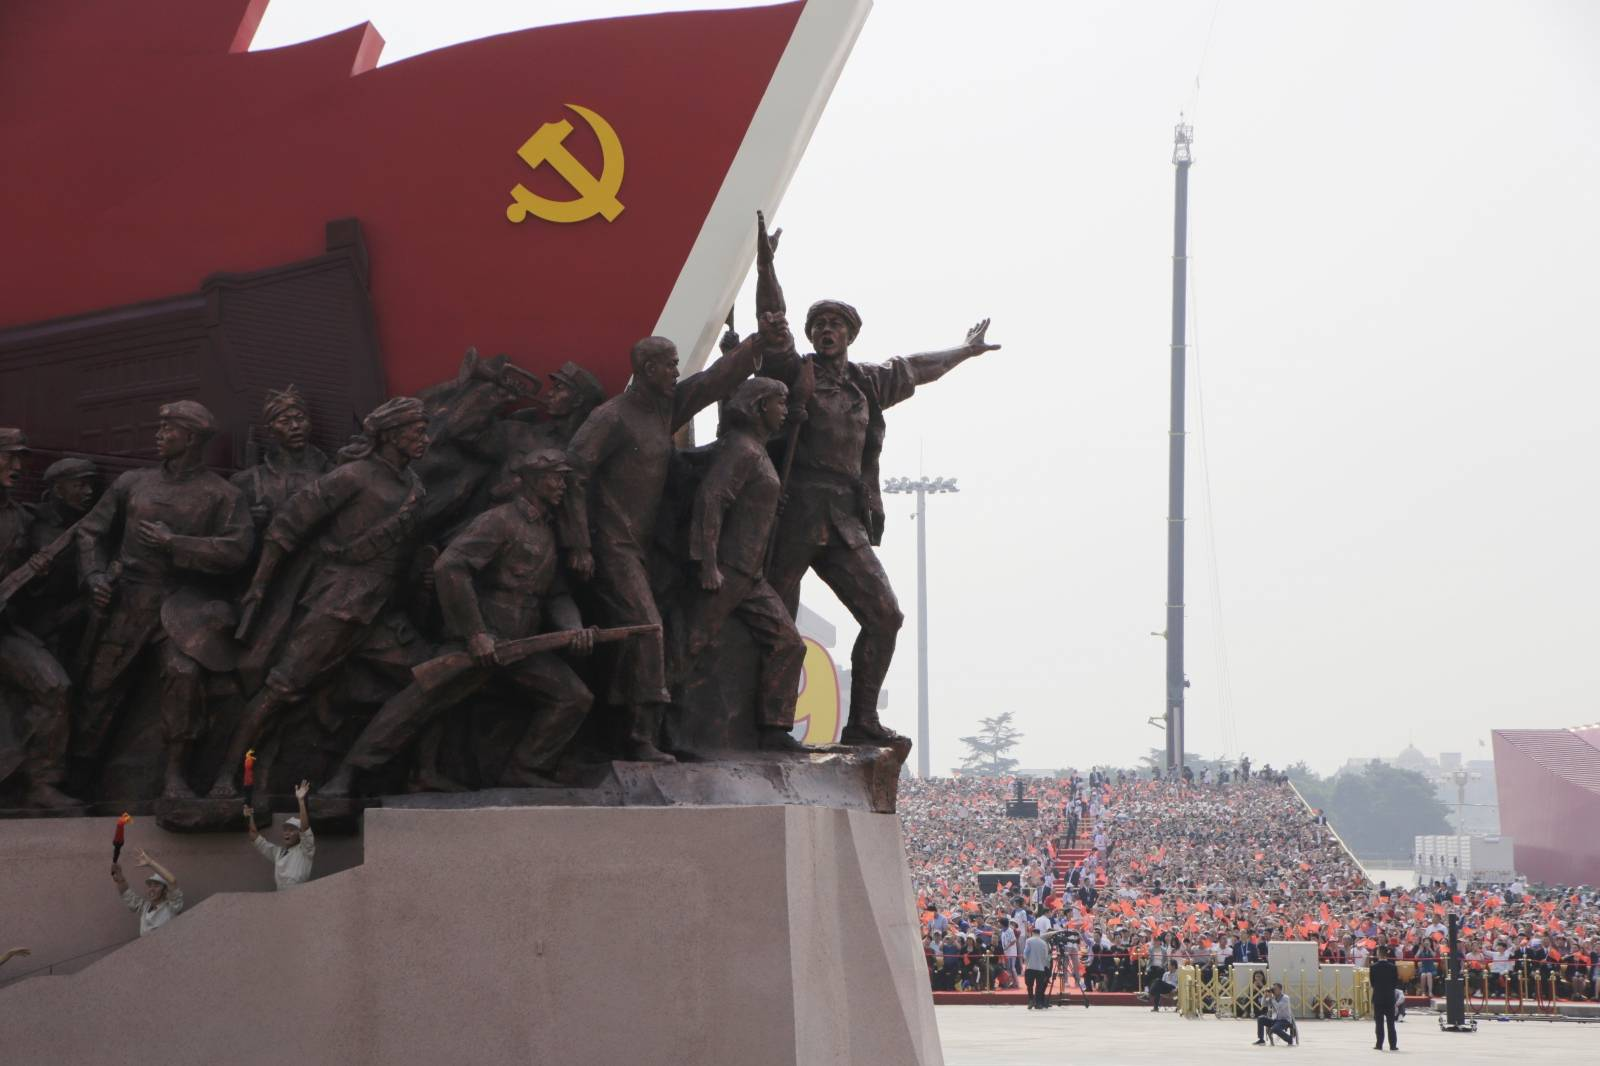 Float featuring the Communist Party of China travels past Tiananmen Square during the parade marking the 70th founding anniversary of People's Republic of China